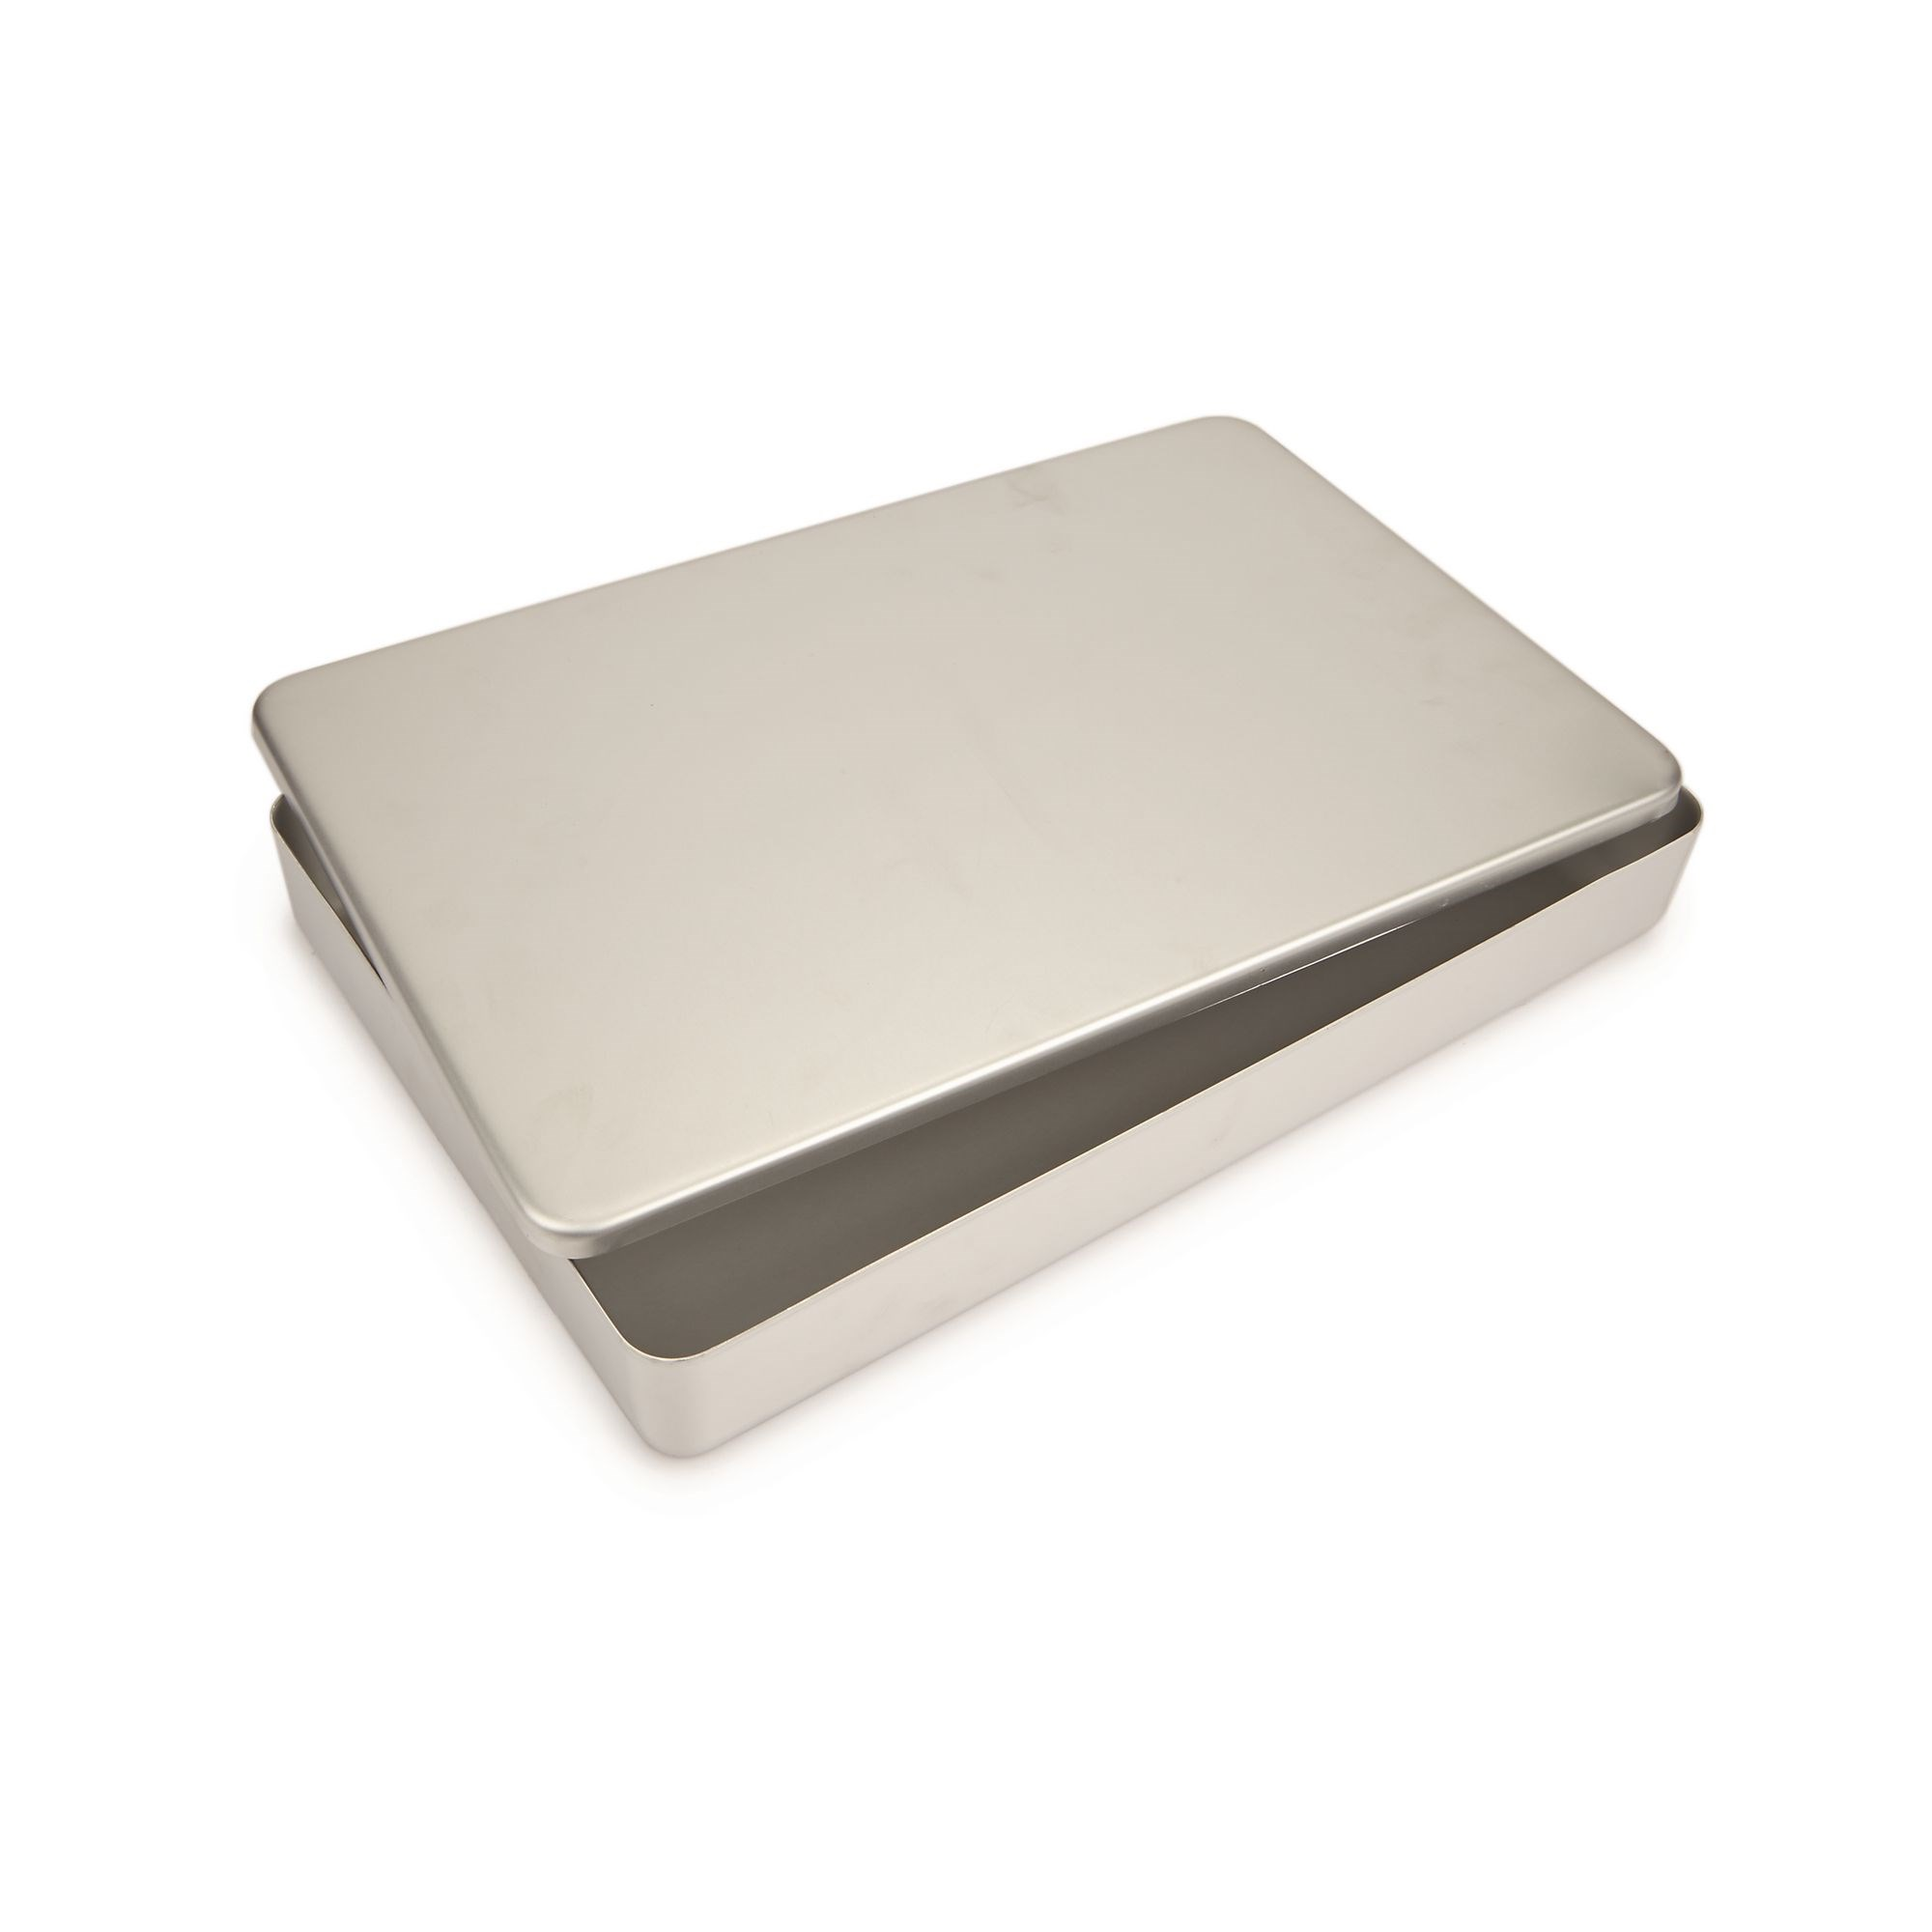 Alu Baking Tray With Lid 32mm